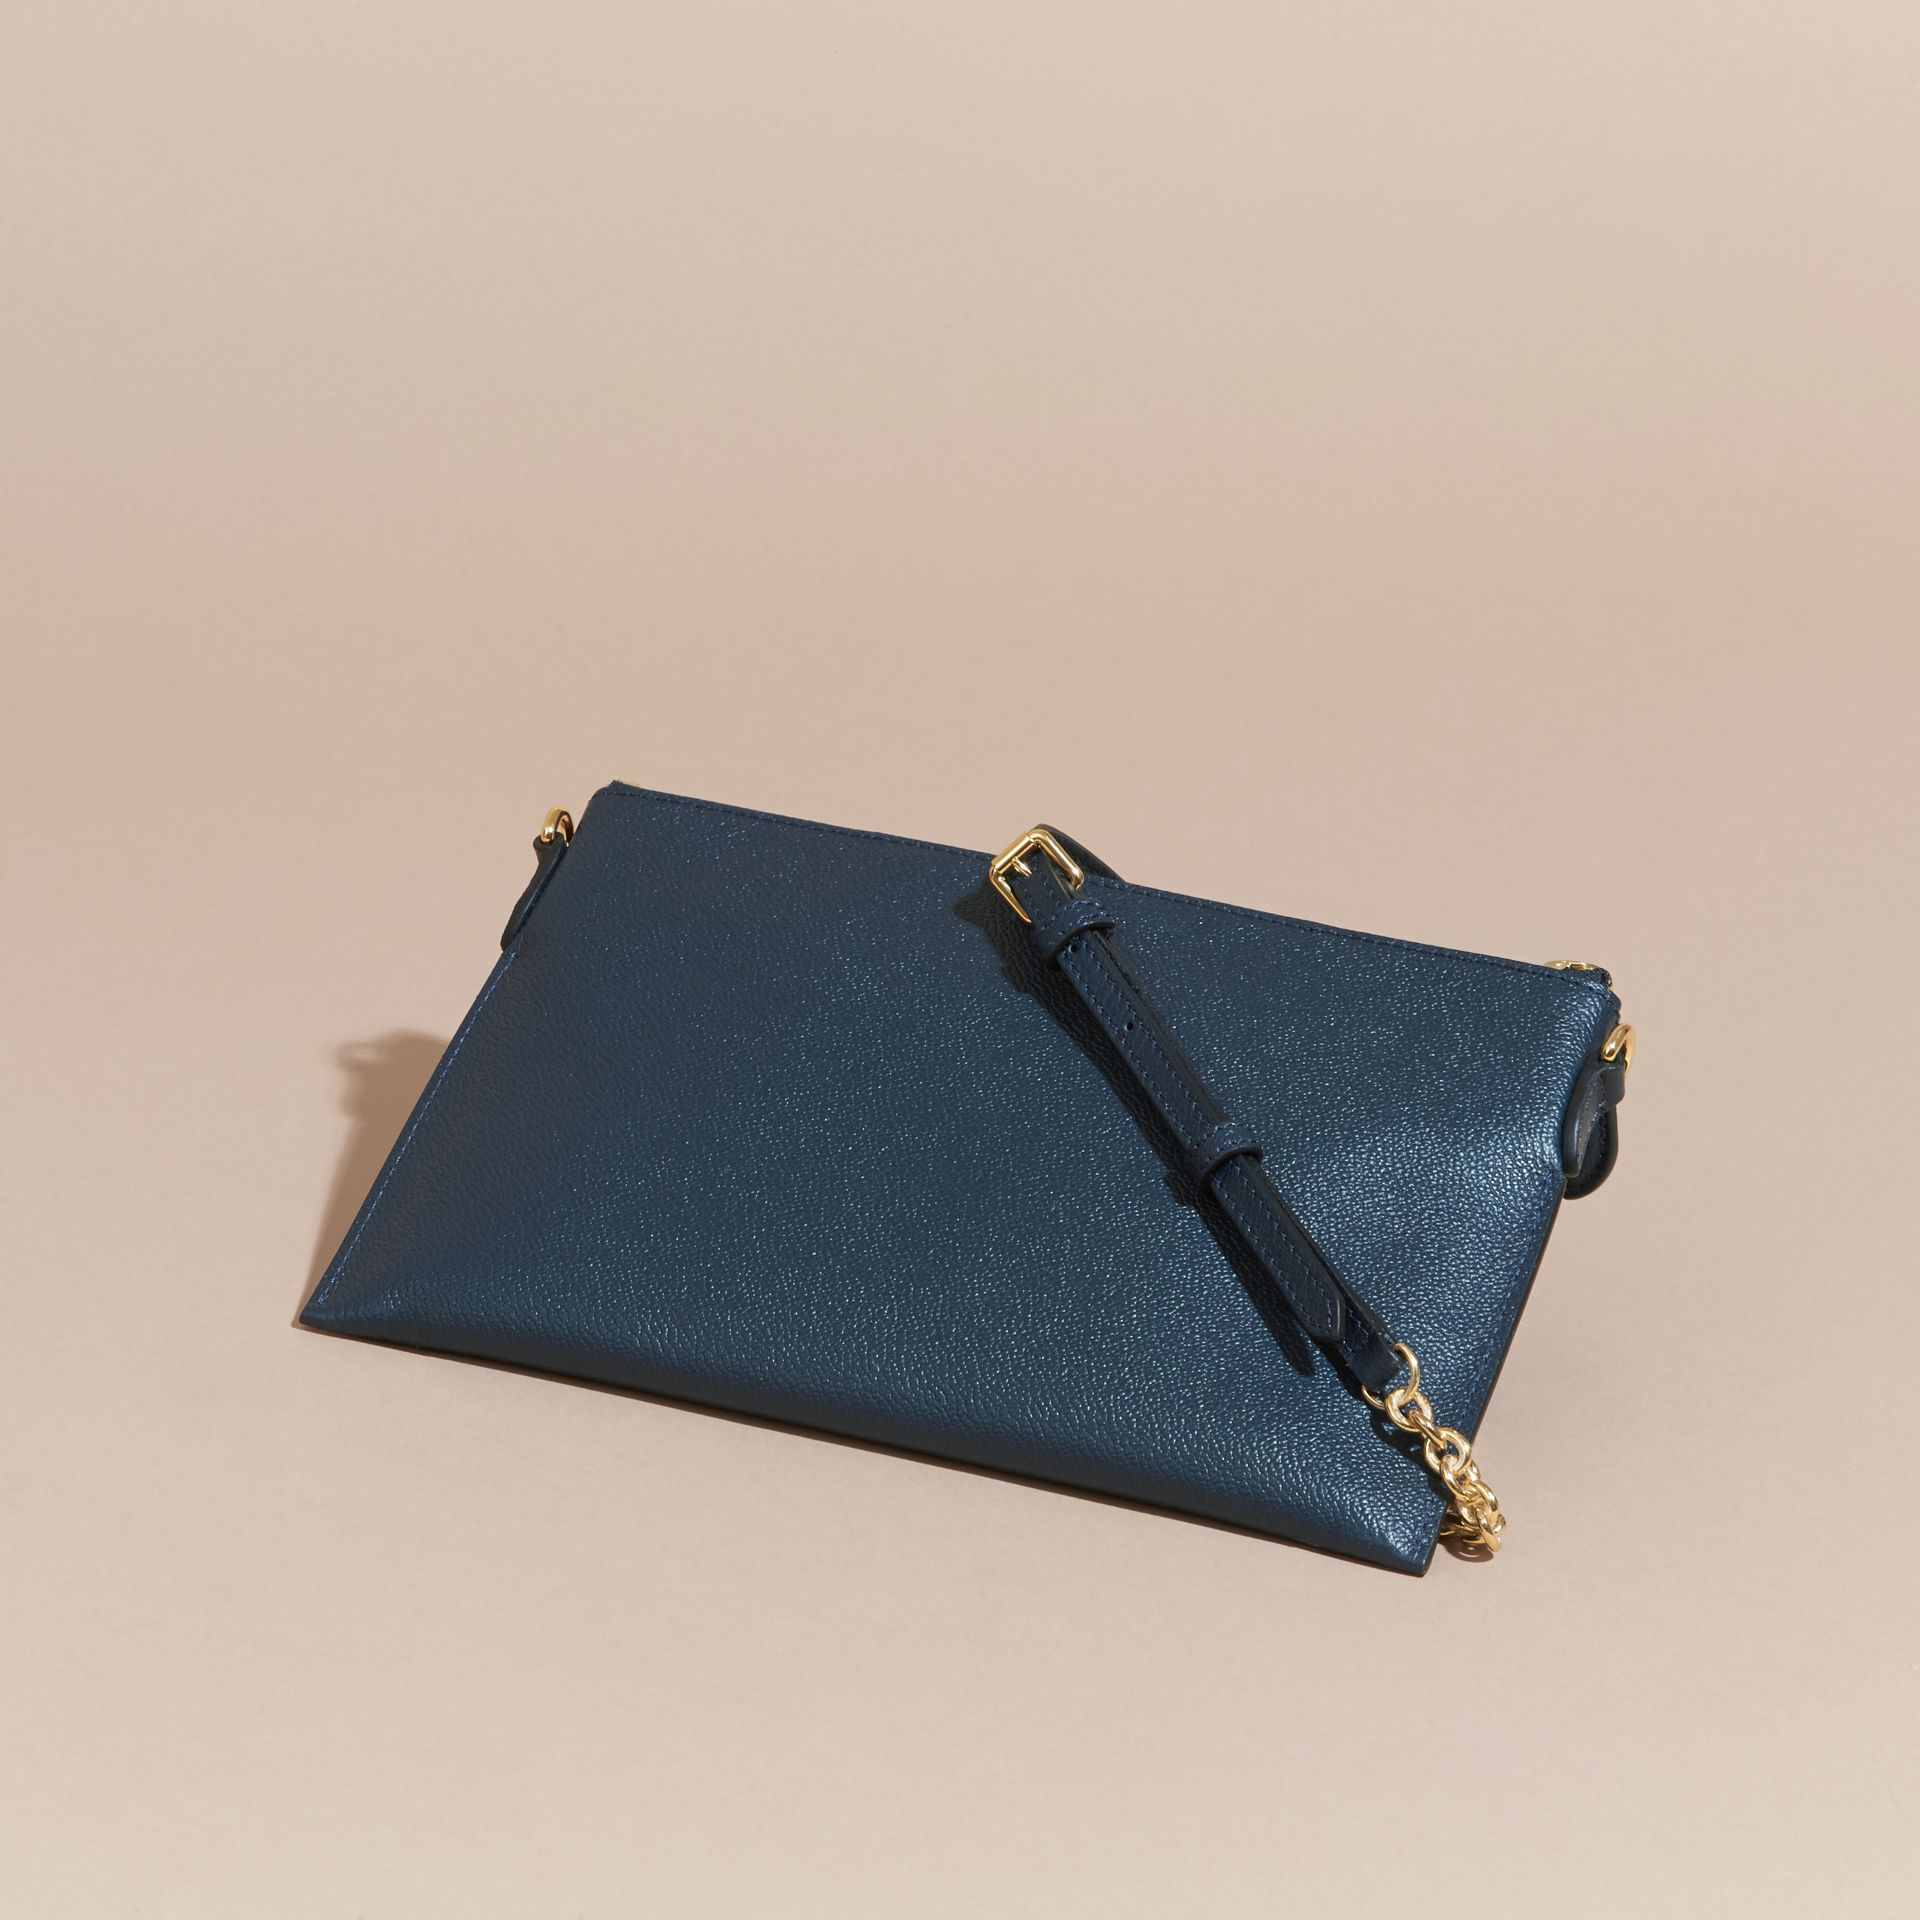 Leather Clutch Bag with Check Lining in Blue Carbon - gallery image 5